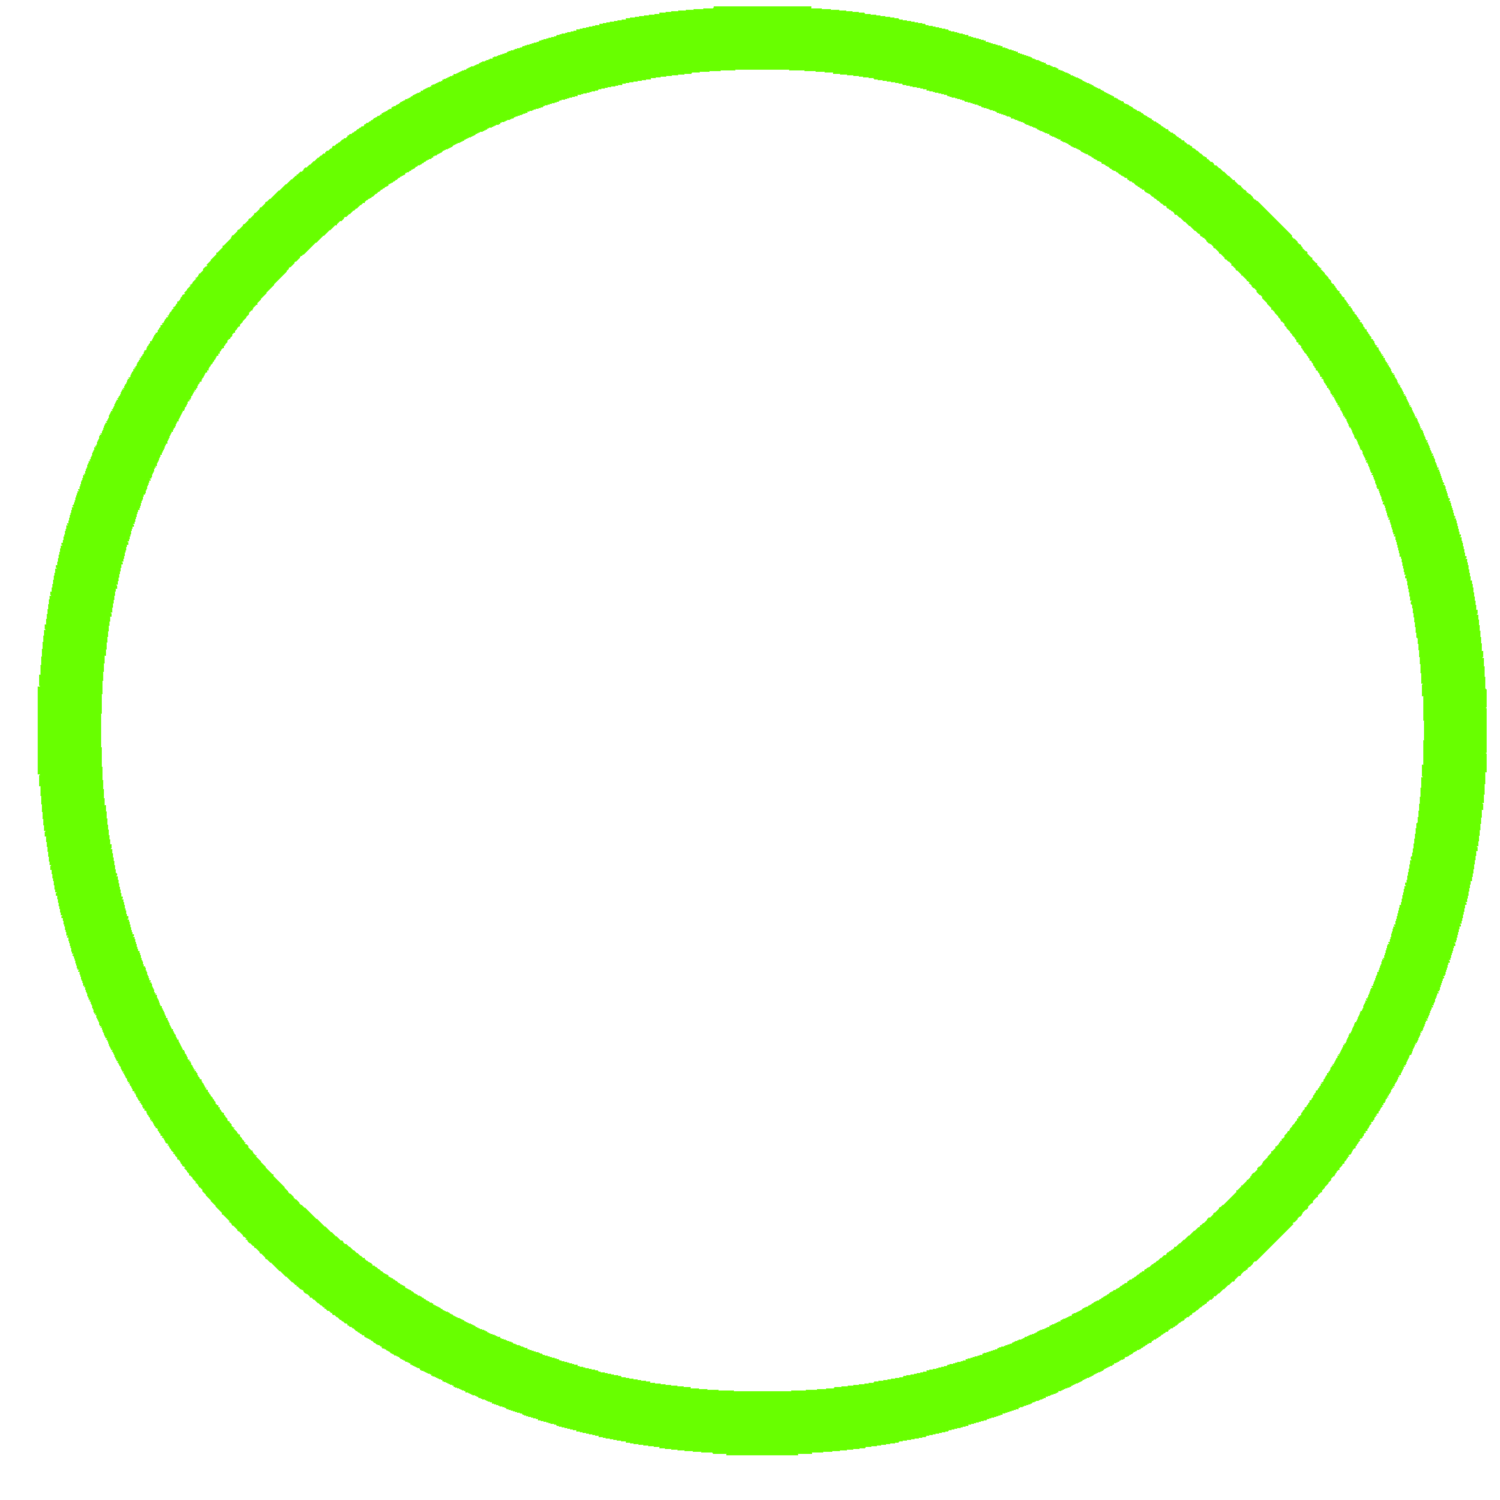 Evolve Coaching Systems